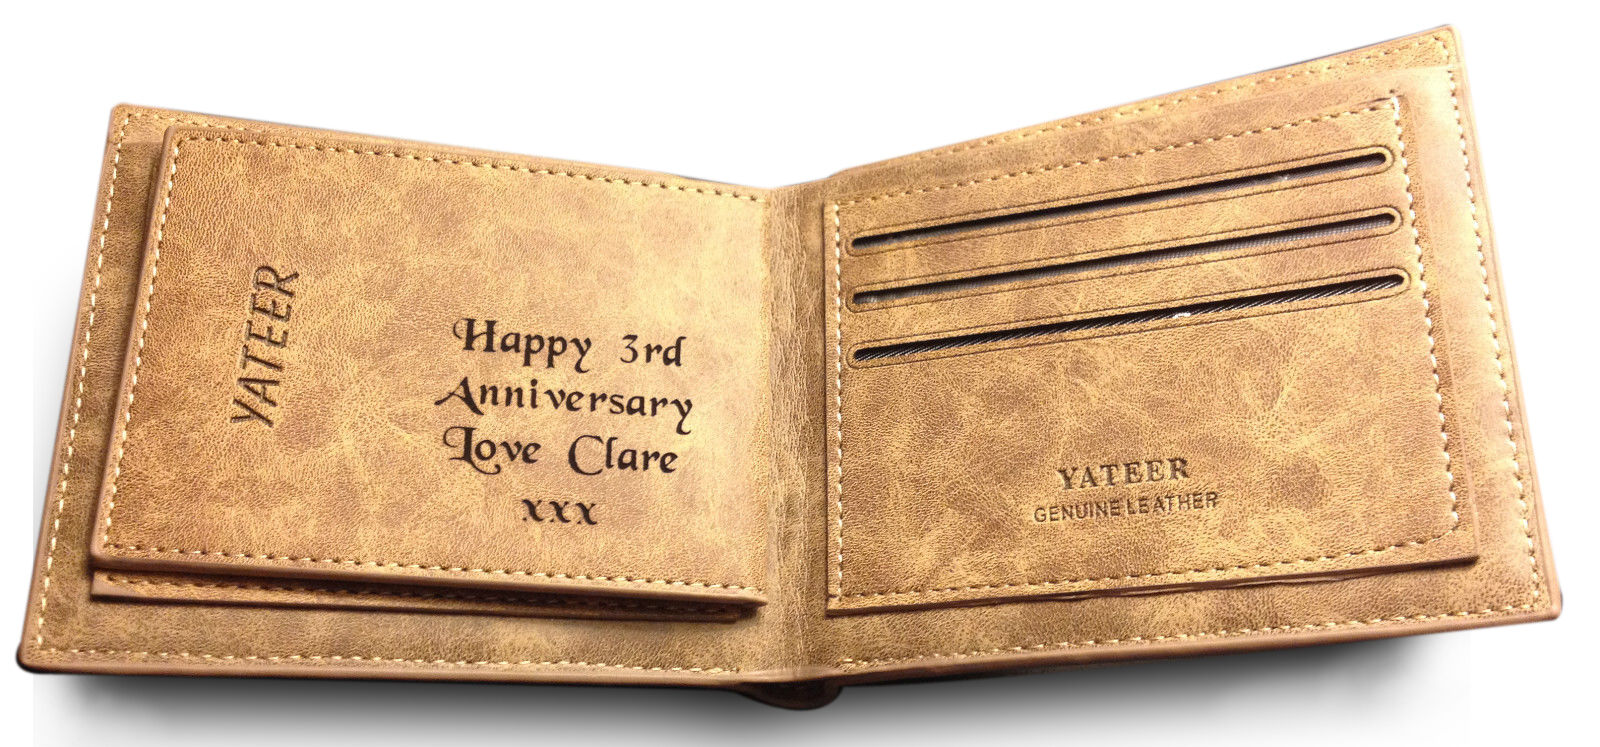 3rd Wedding Anniversary Gift For Husband: Men's Personalised Engraved Leather Wallet 3rd Wedding